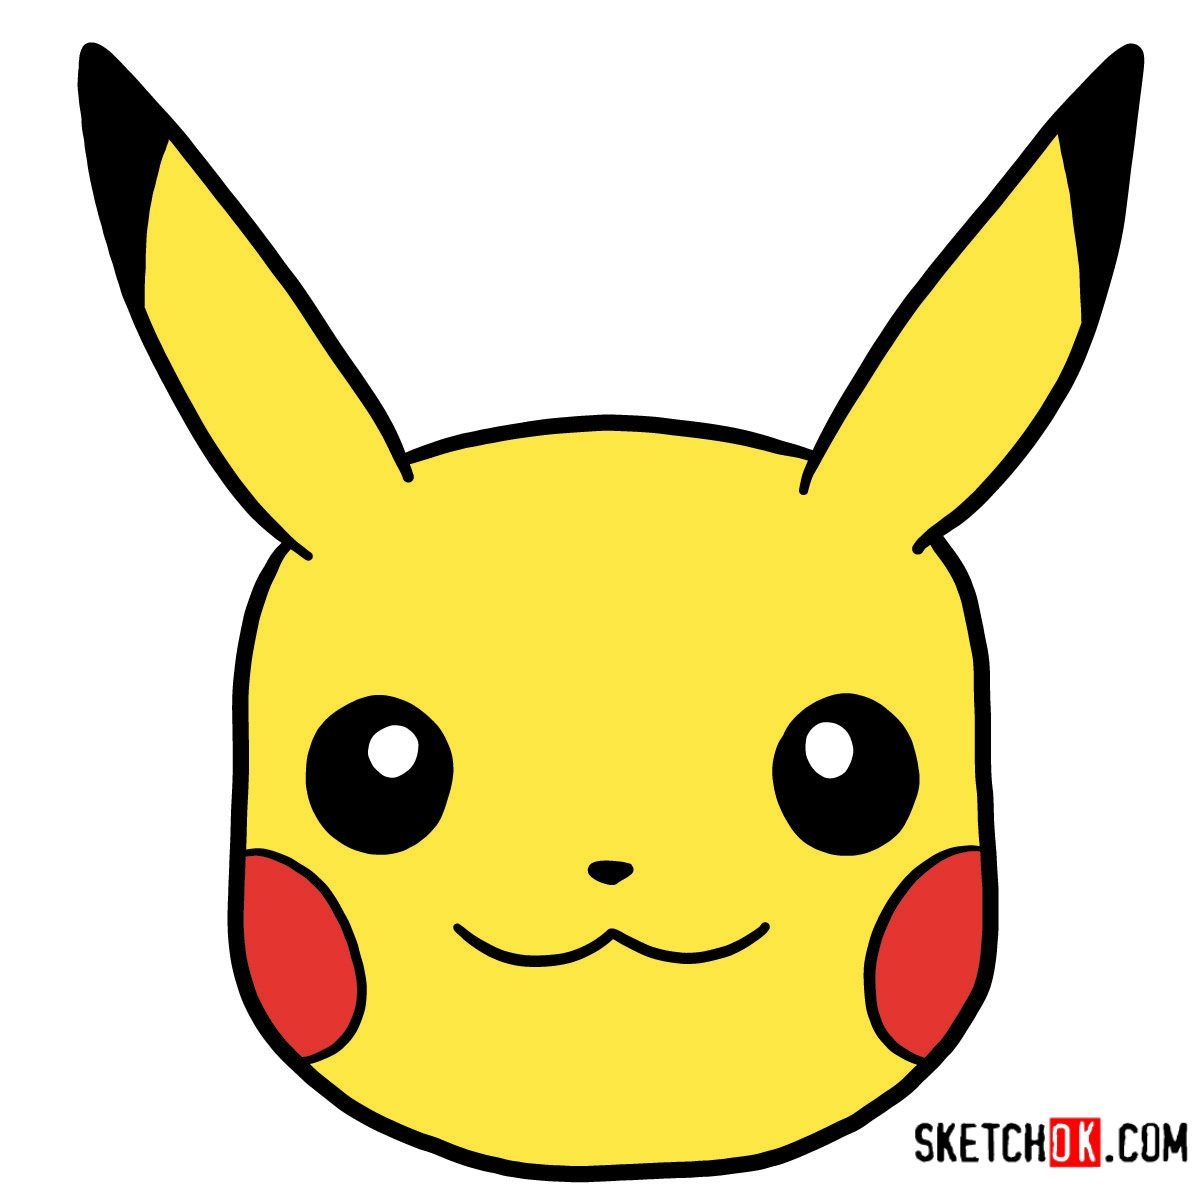 How to draw Pikachu's face | Pokemon